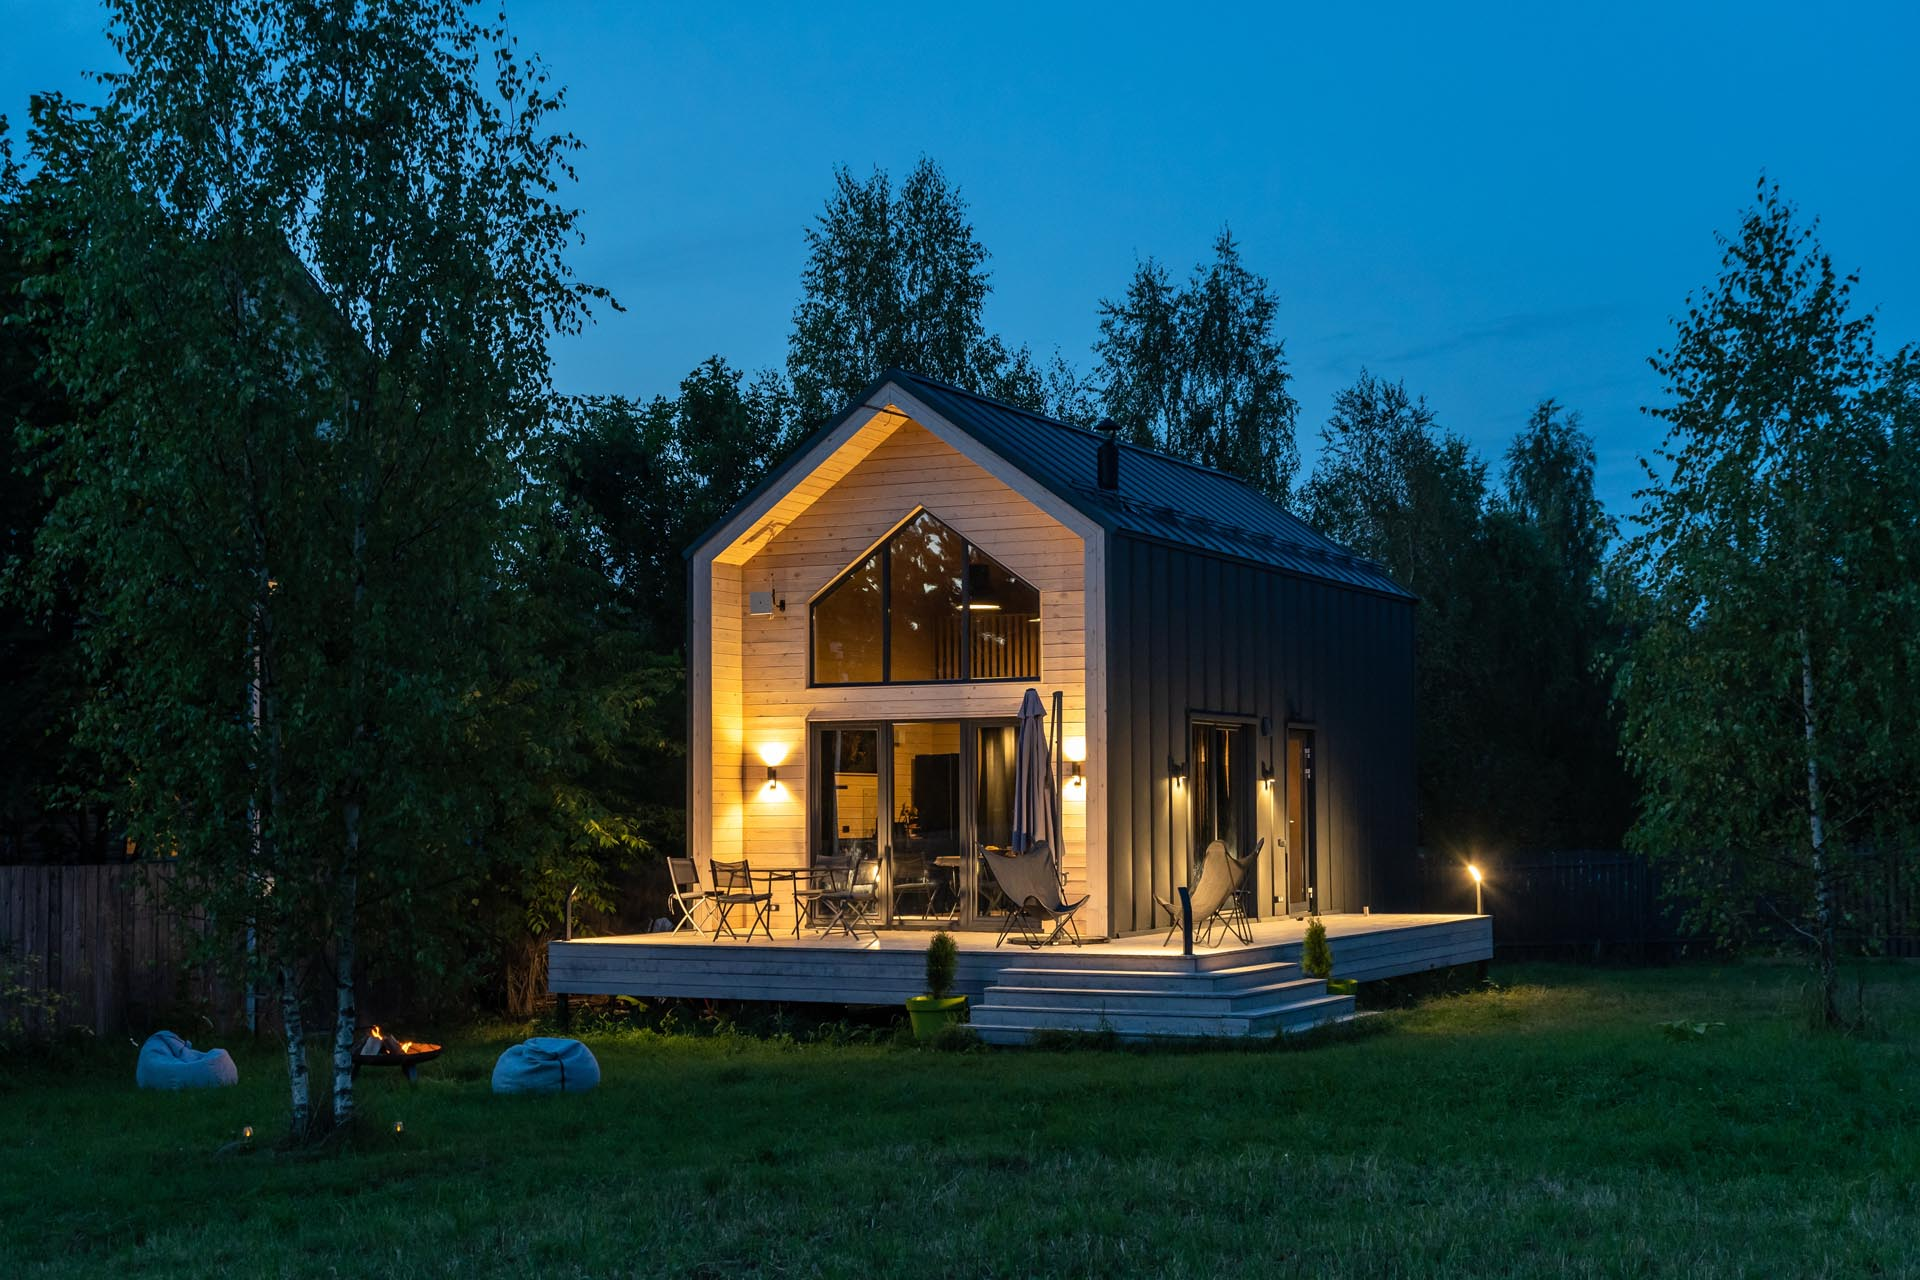 A modern barn-inspired home with a black metal exterior that's accented at each end with tongue and groove wood siding.